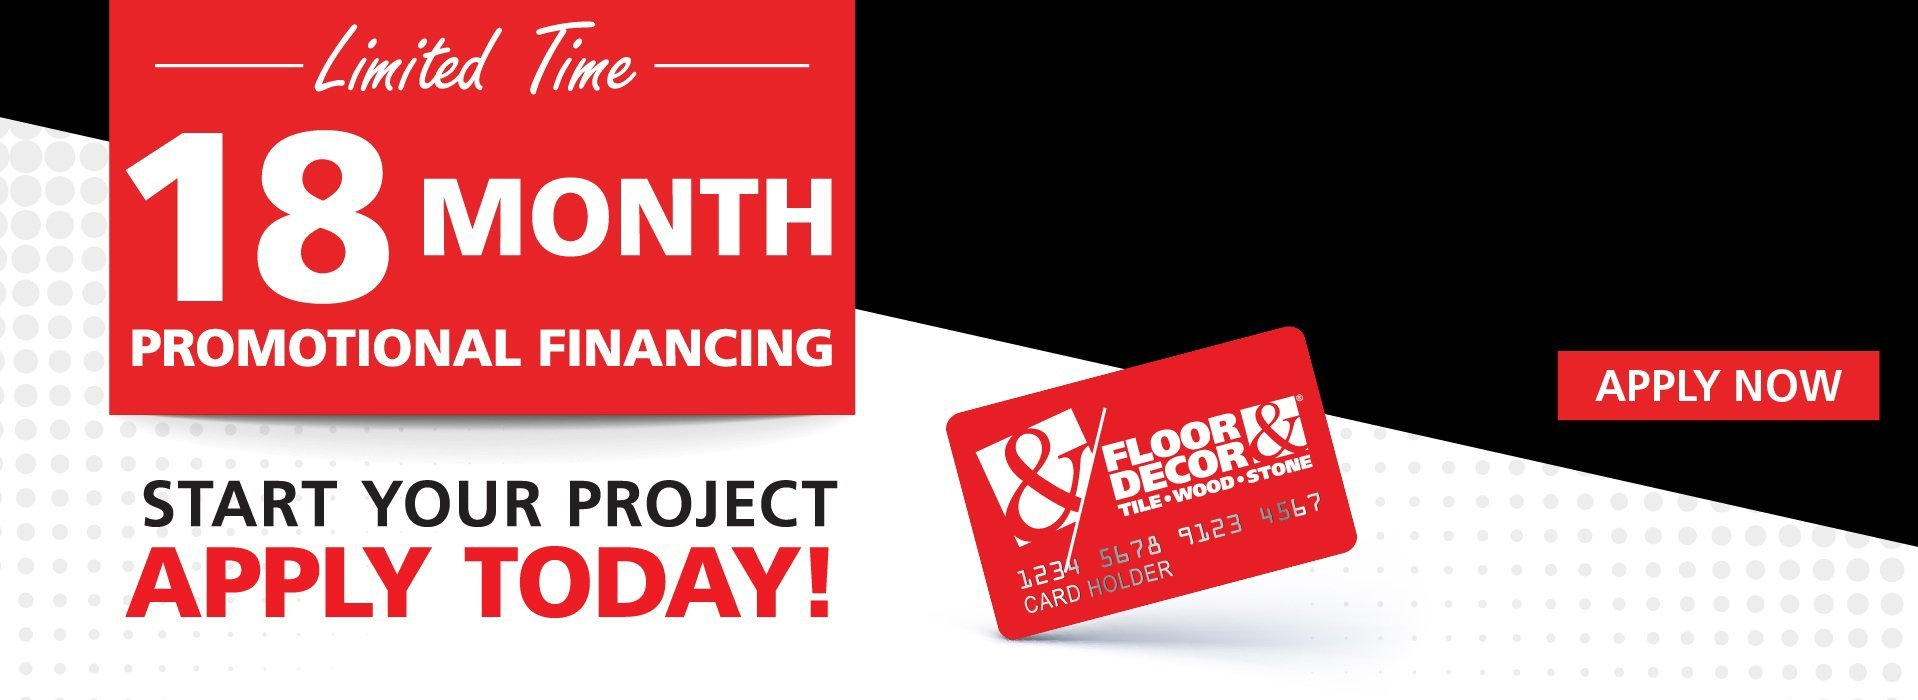 Limited Time 18 Month Promotional Financing